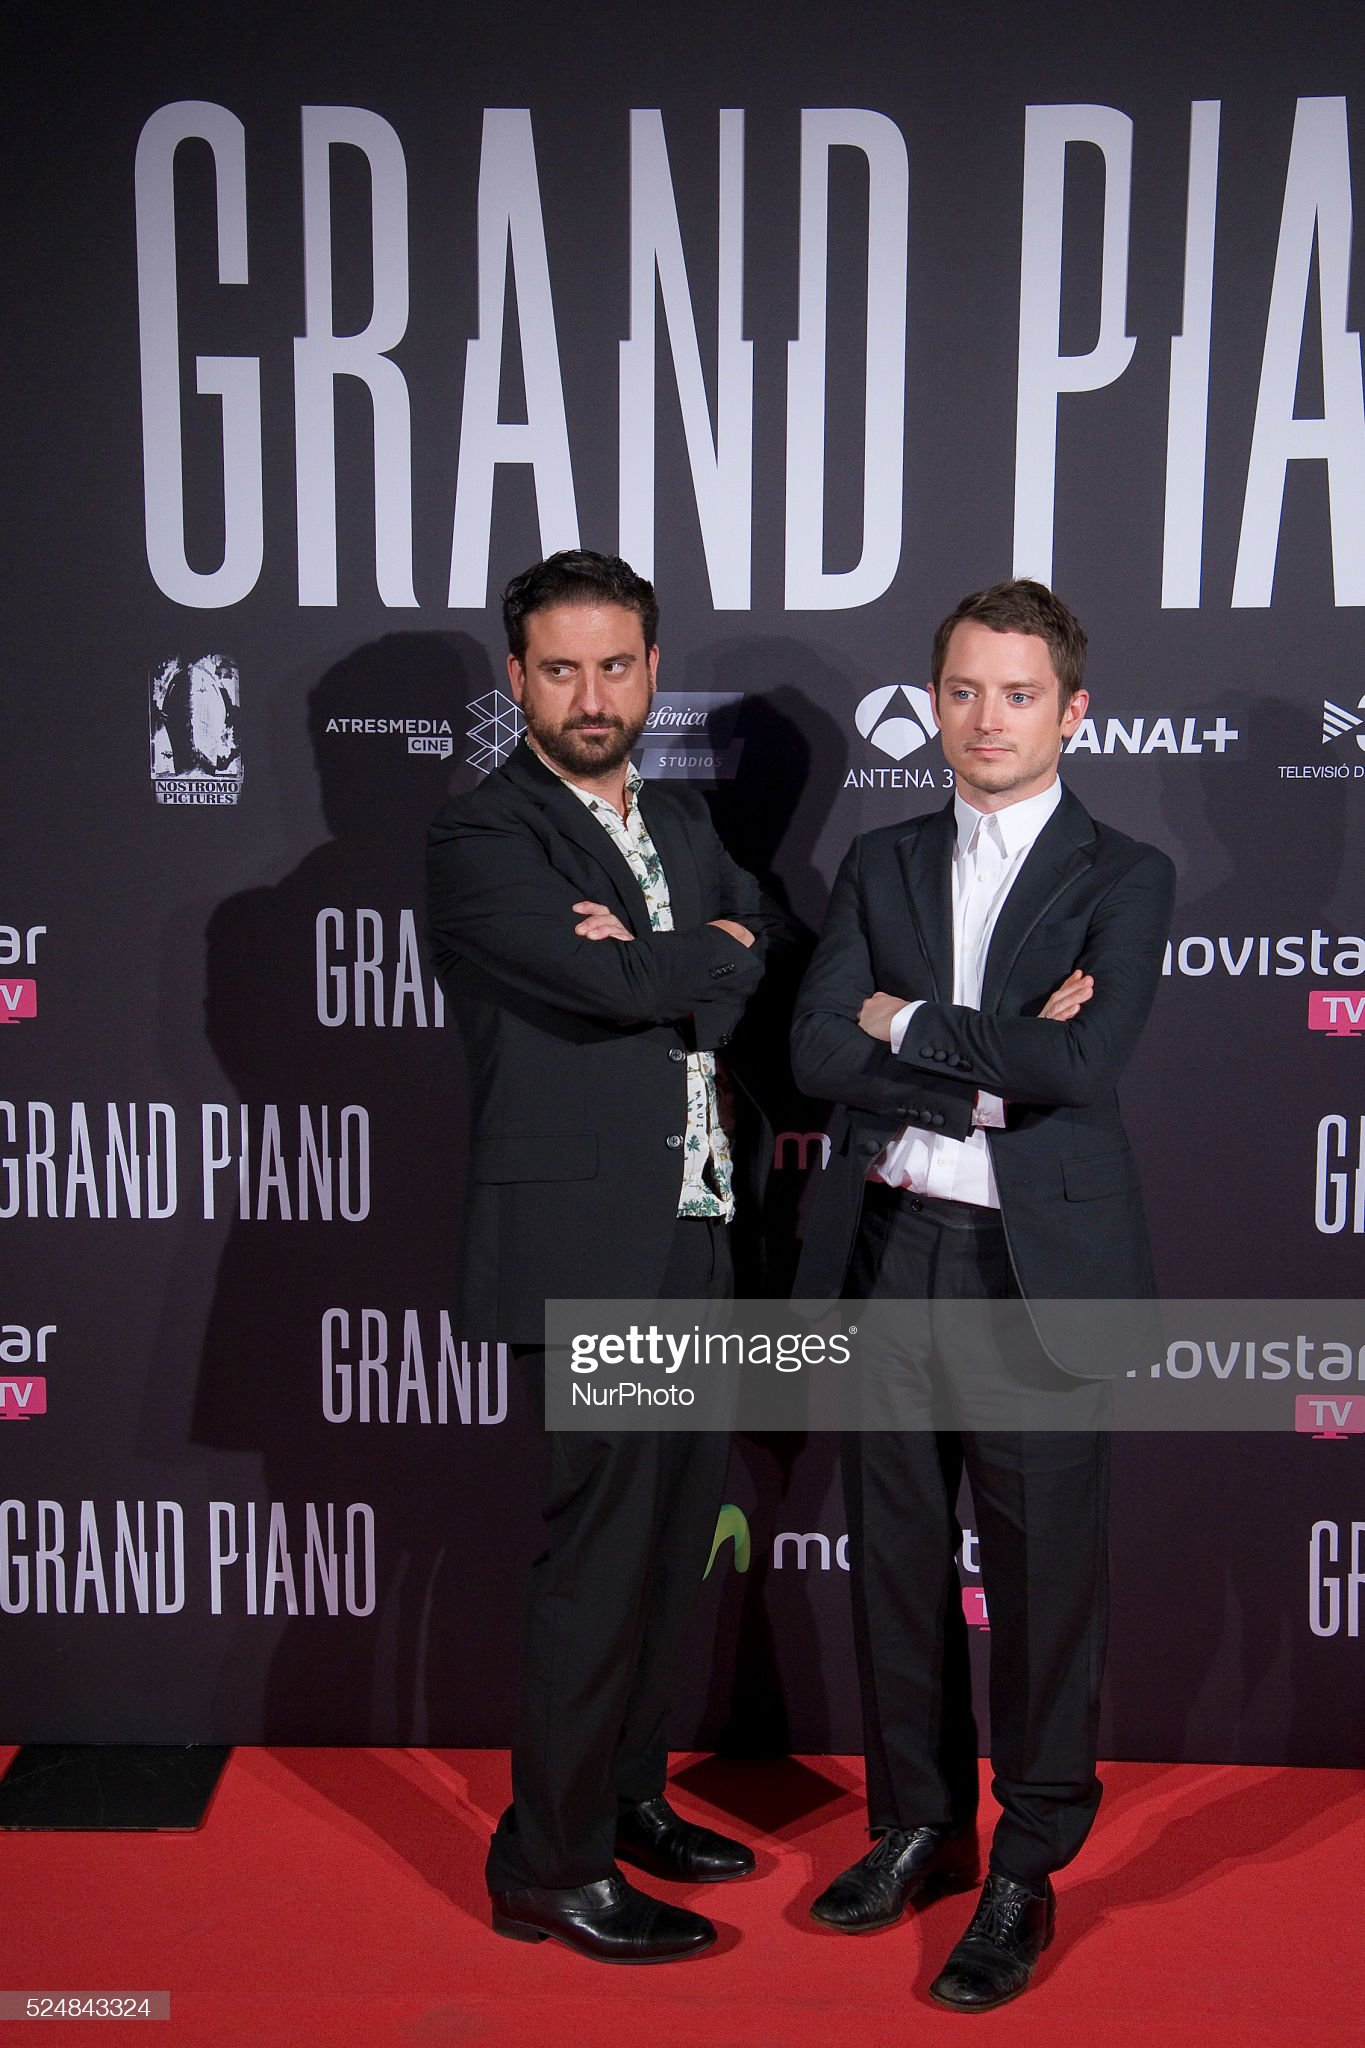 ¿Cuánto mide Eugenio Mira? - Altura Director-and-lead-actor-elijah-wood-madrid-visit-to-attend-the-of-picture-id524843324?s=2048x2048